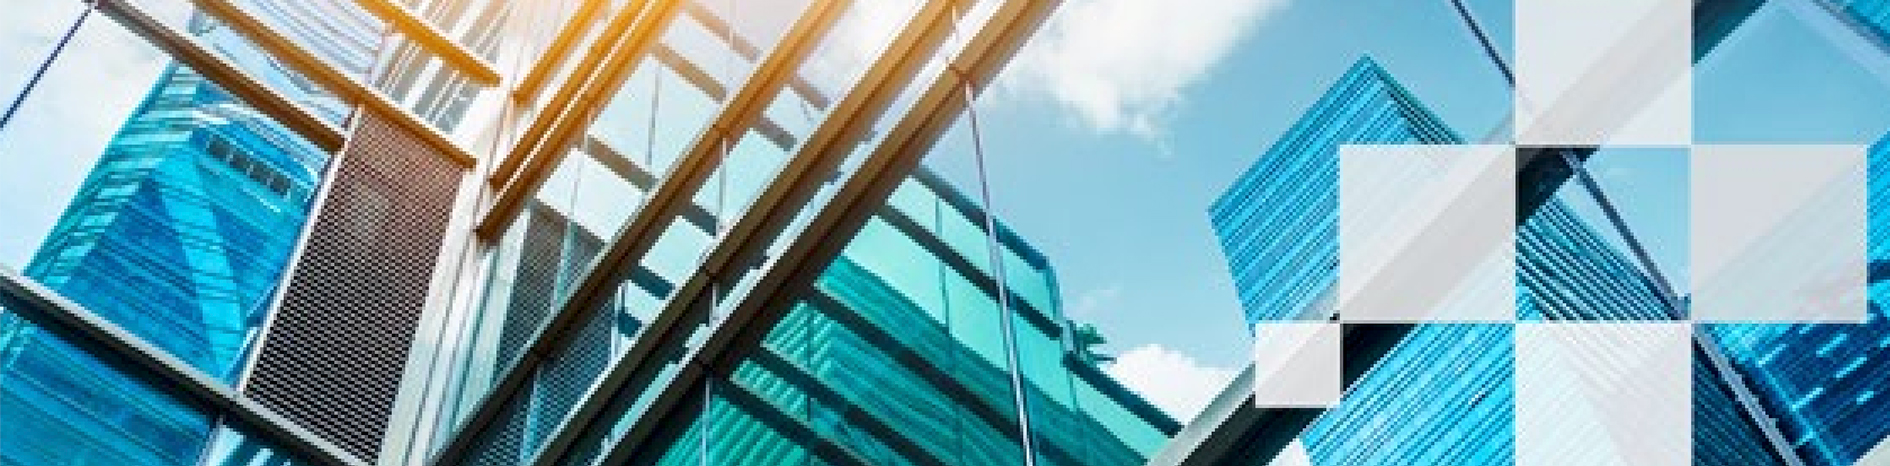 Leading-Israeli-Bank-Migrates-Their-Mainframe-to-Microservices2